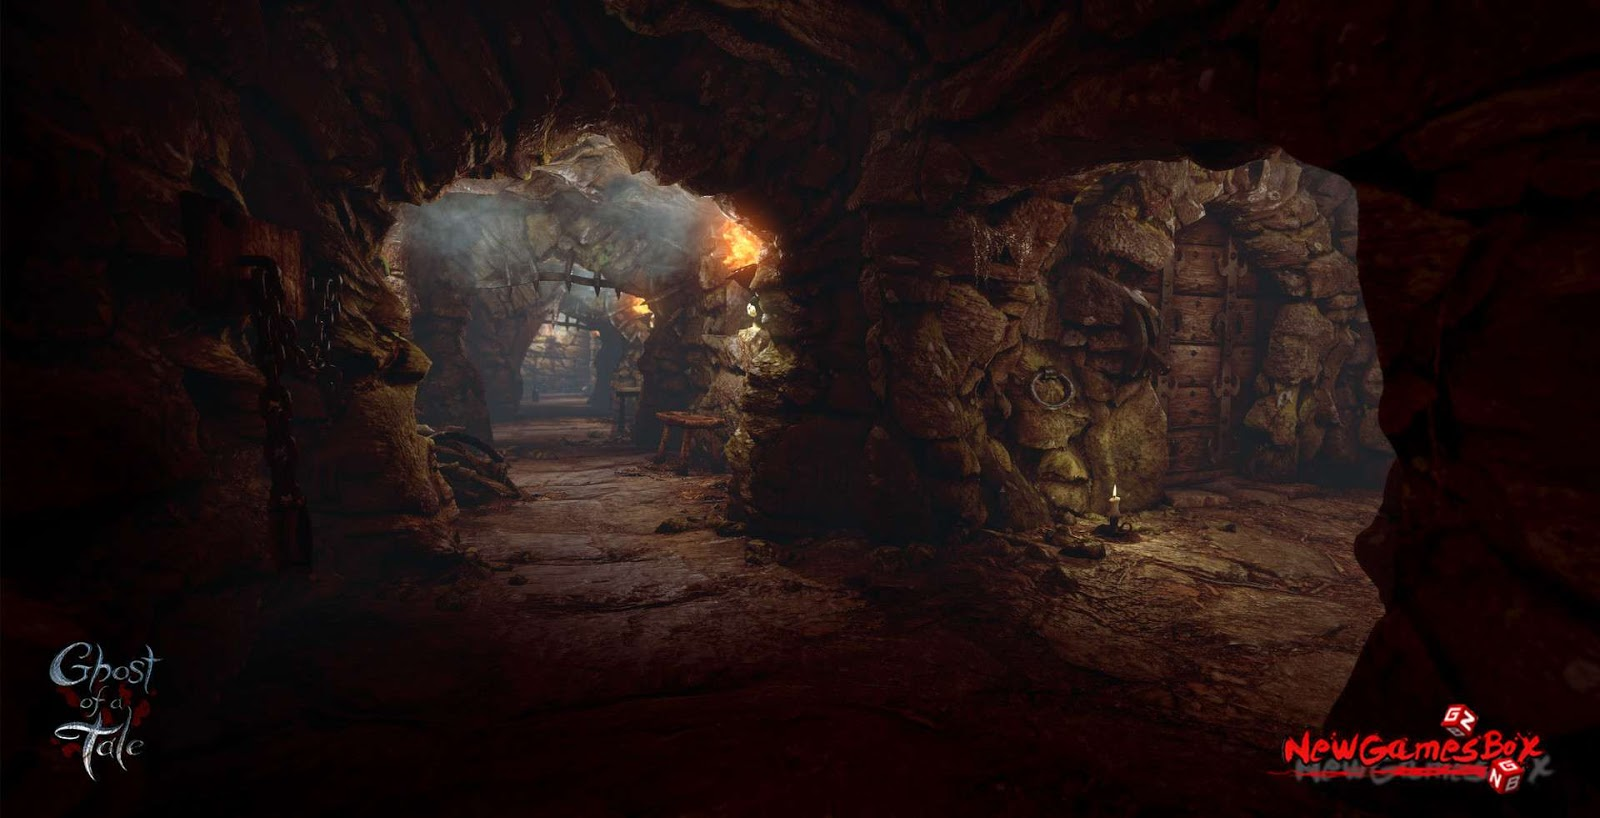 ghost of a tale pc game free download